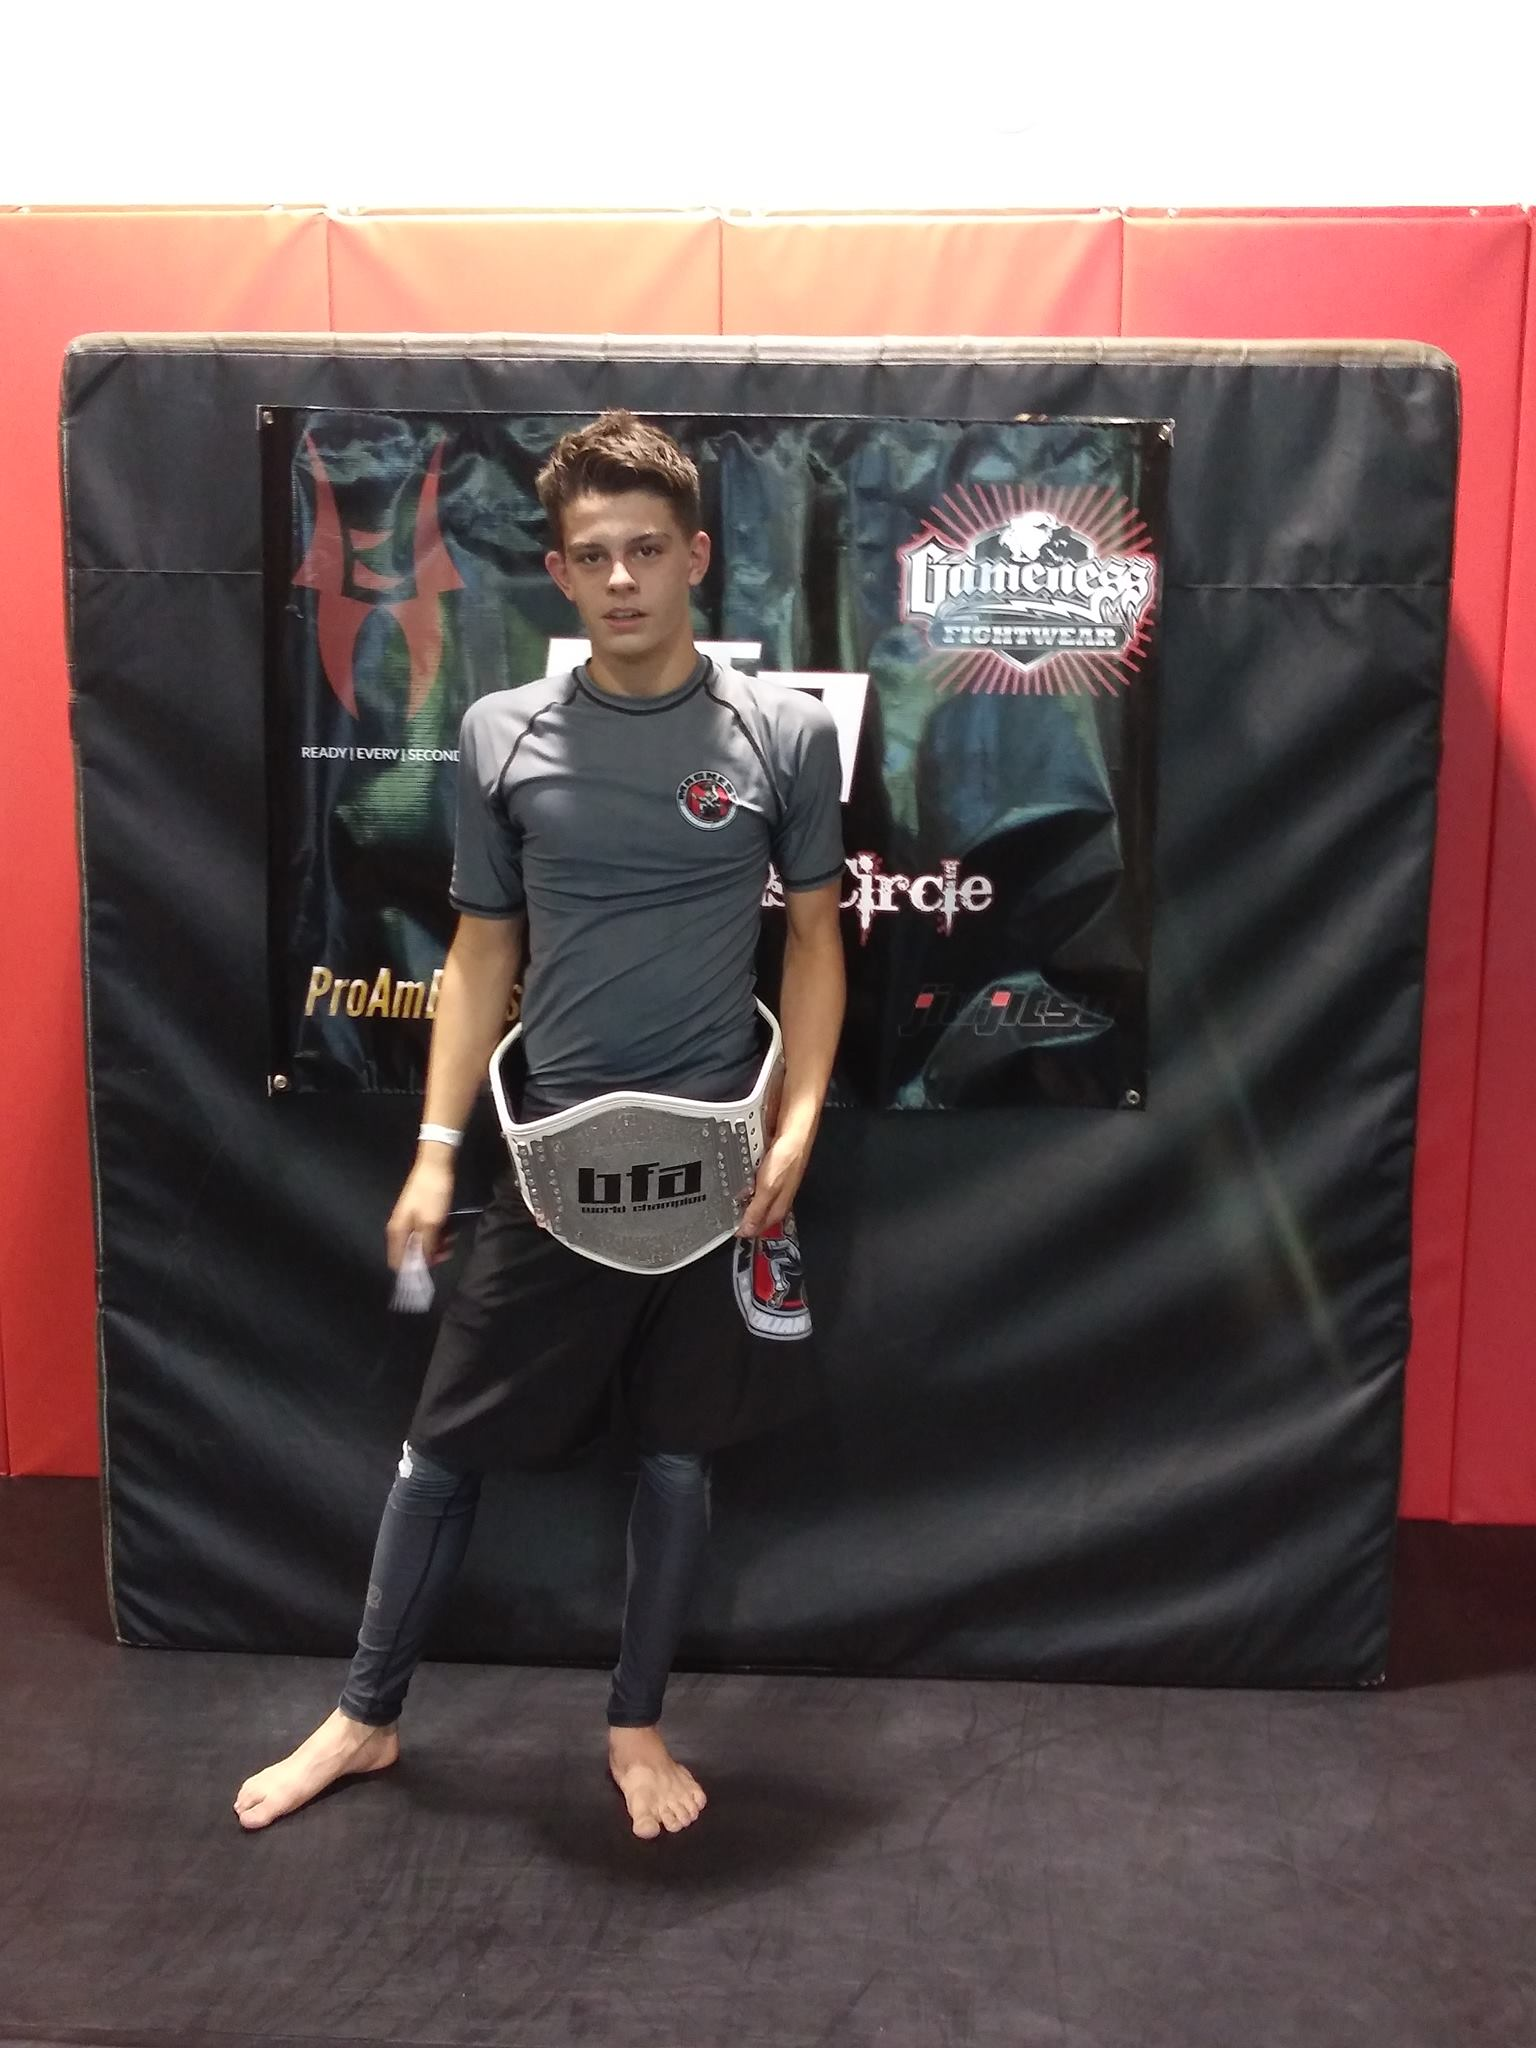 Cedar Hill BJJ is home of the BFA lightweight champion!